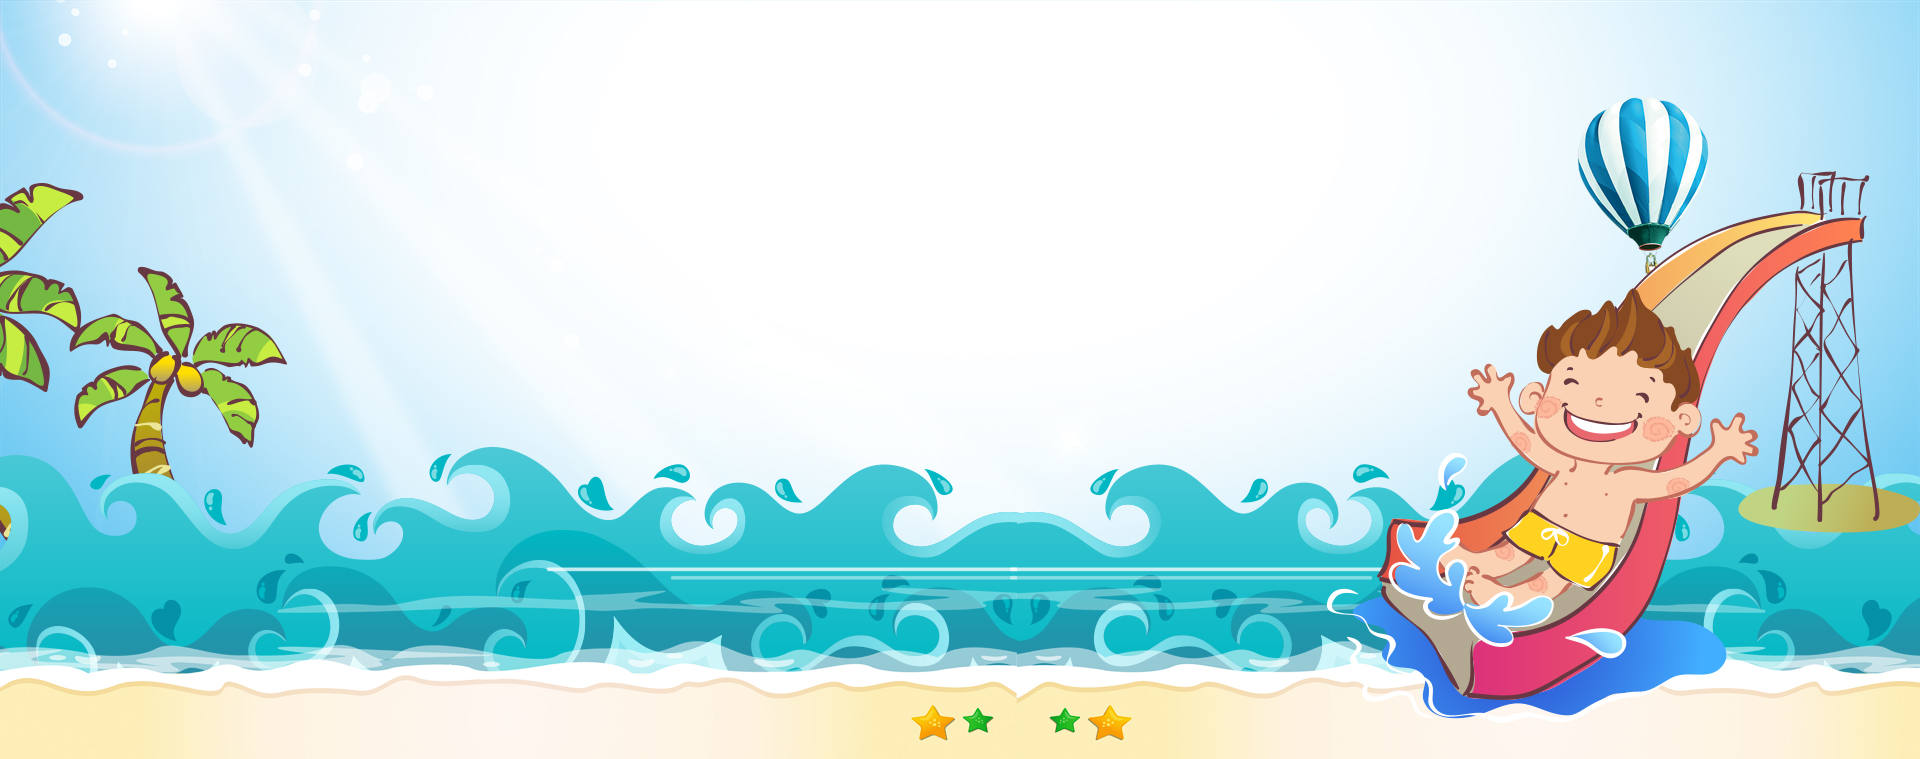 beach beach slides cartoon blue sky background  summer